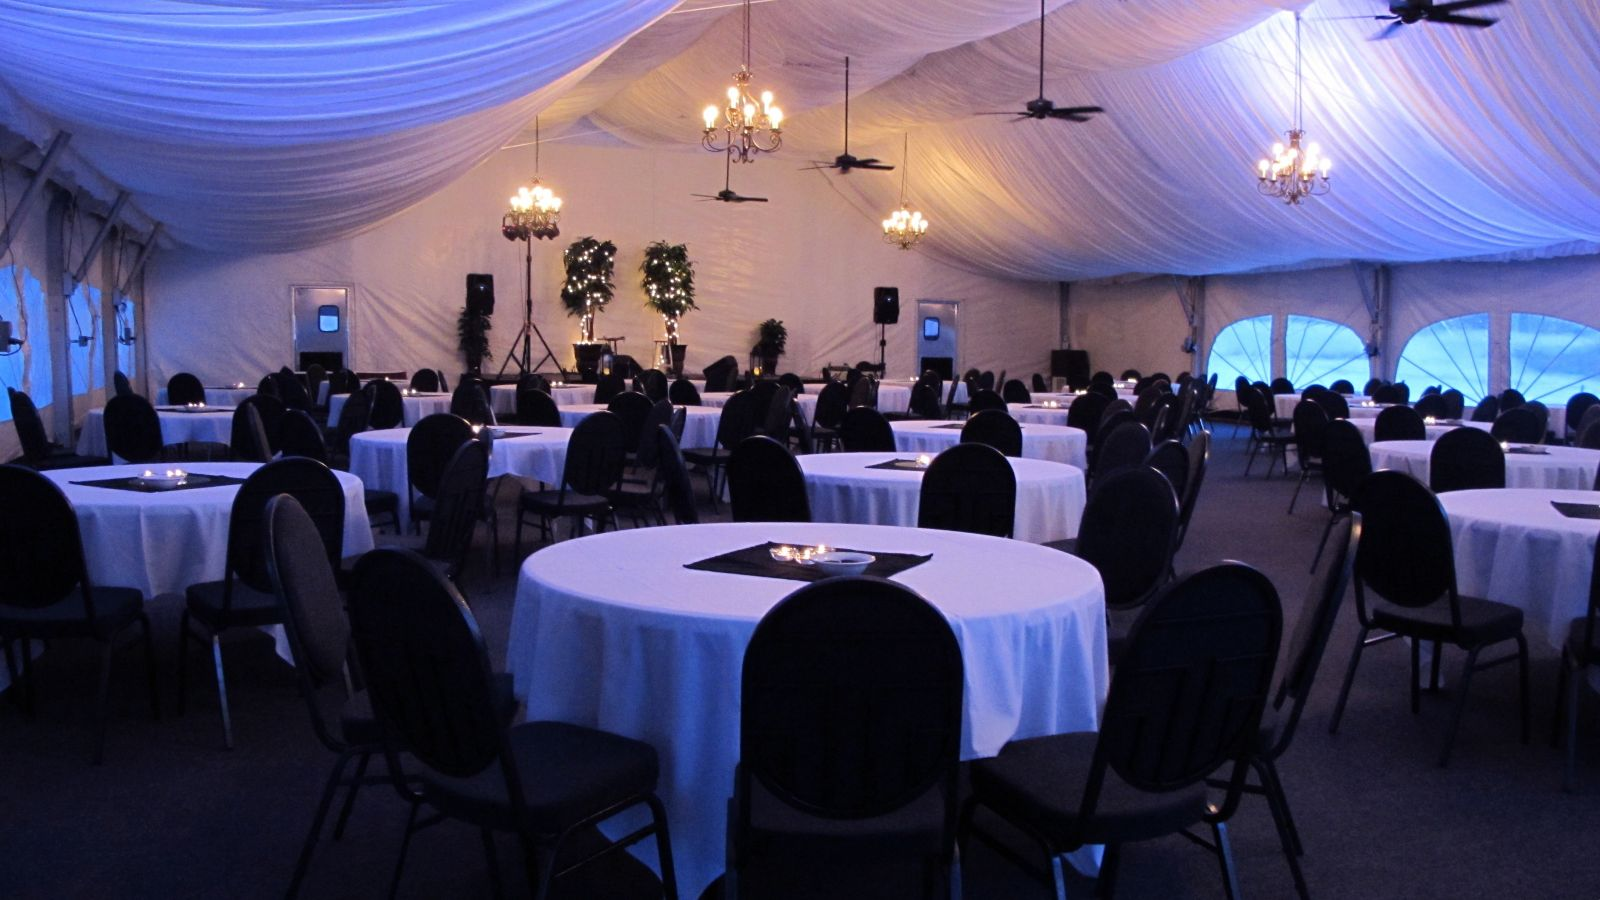 The pavillion is available for large gatherings.